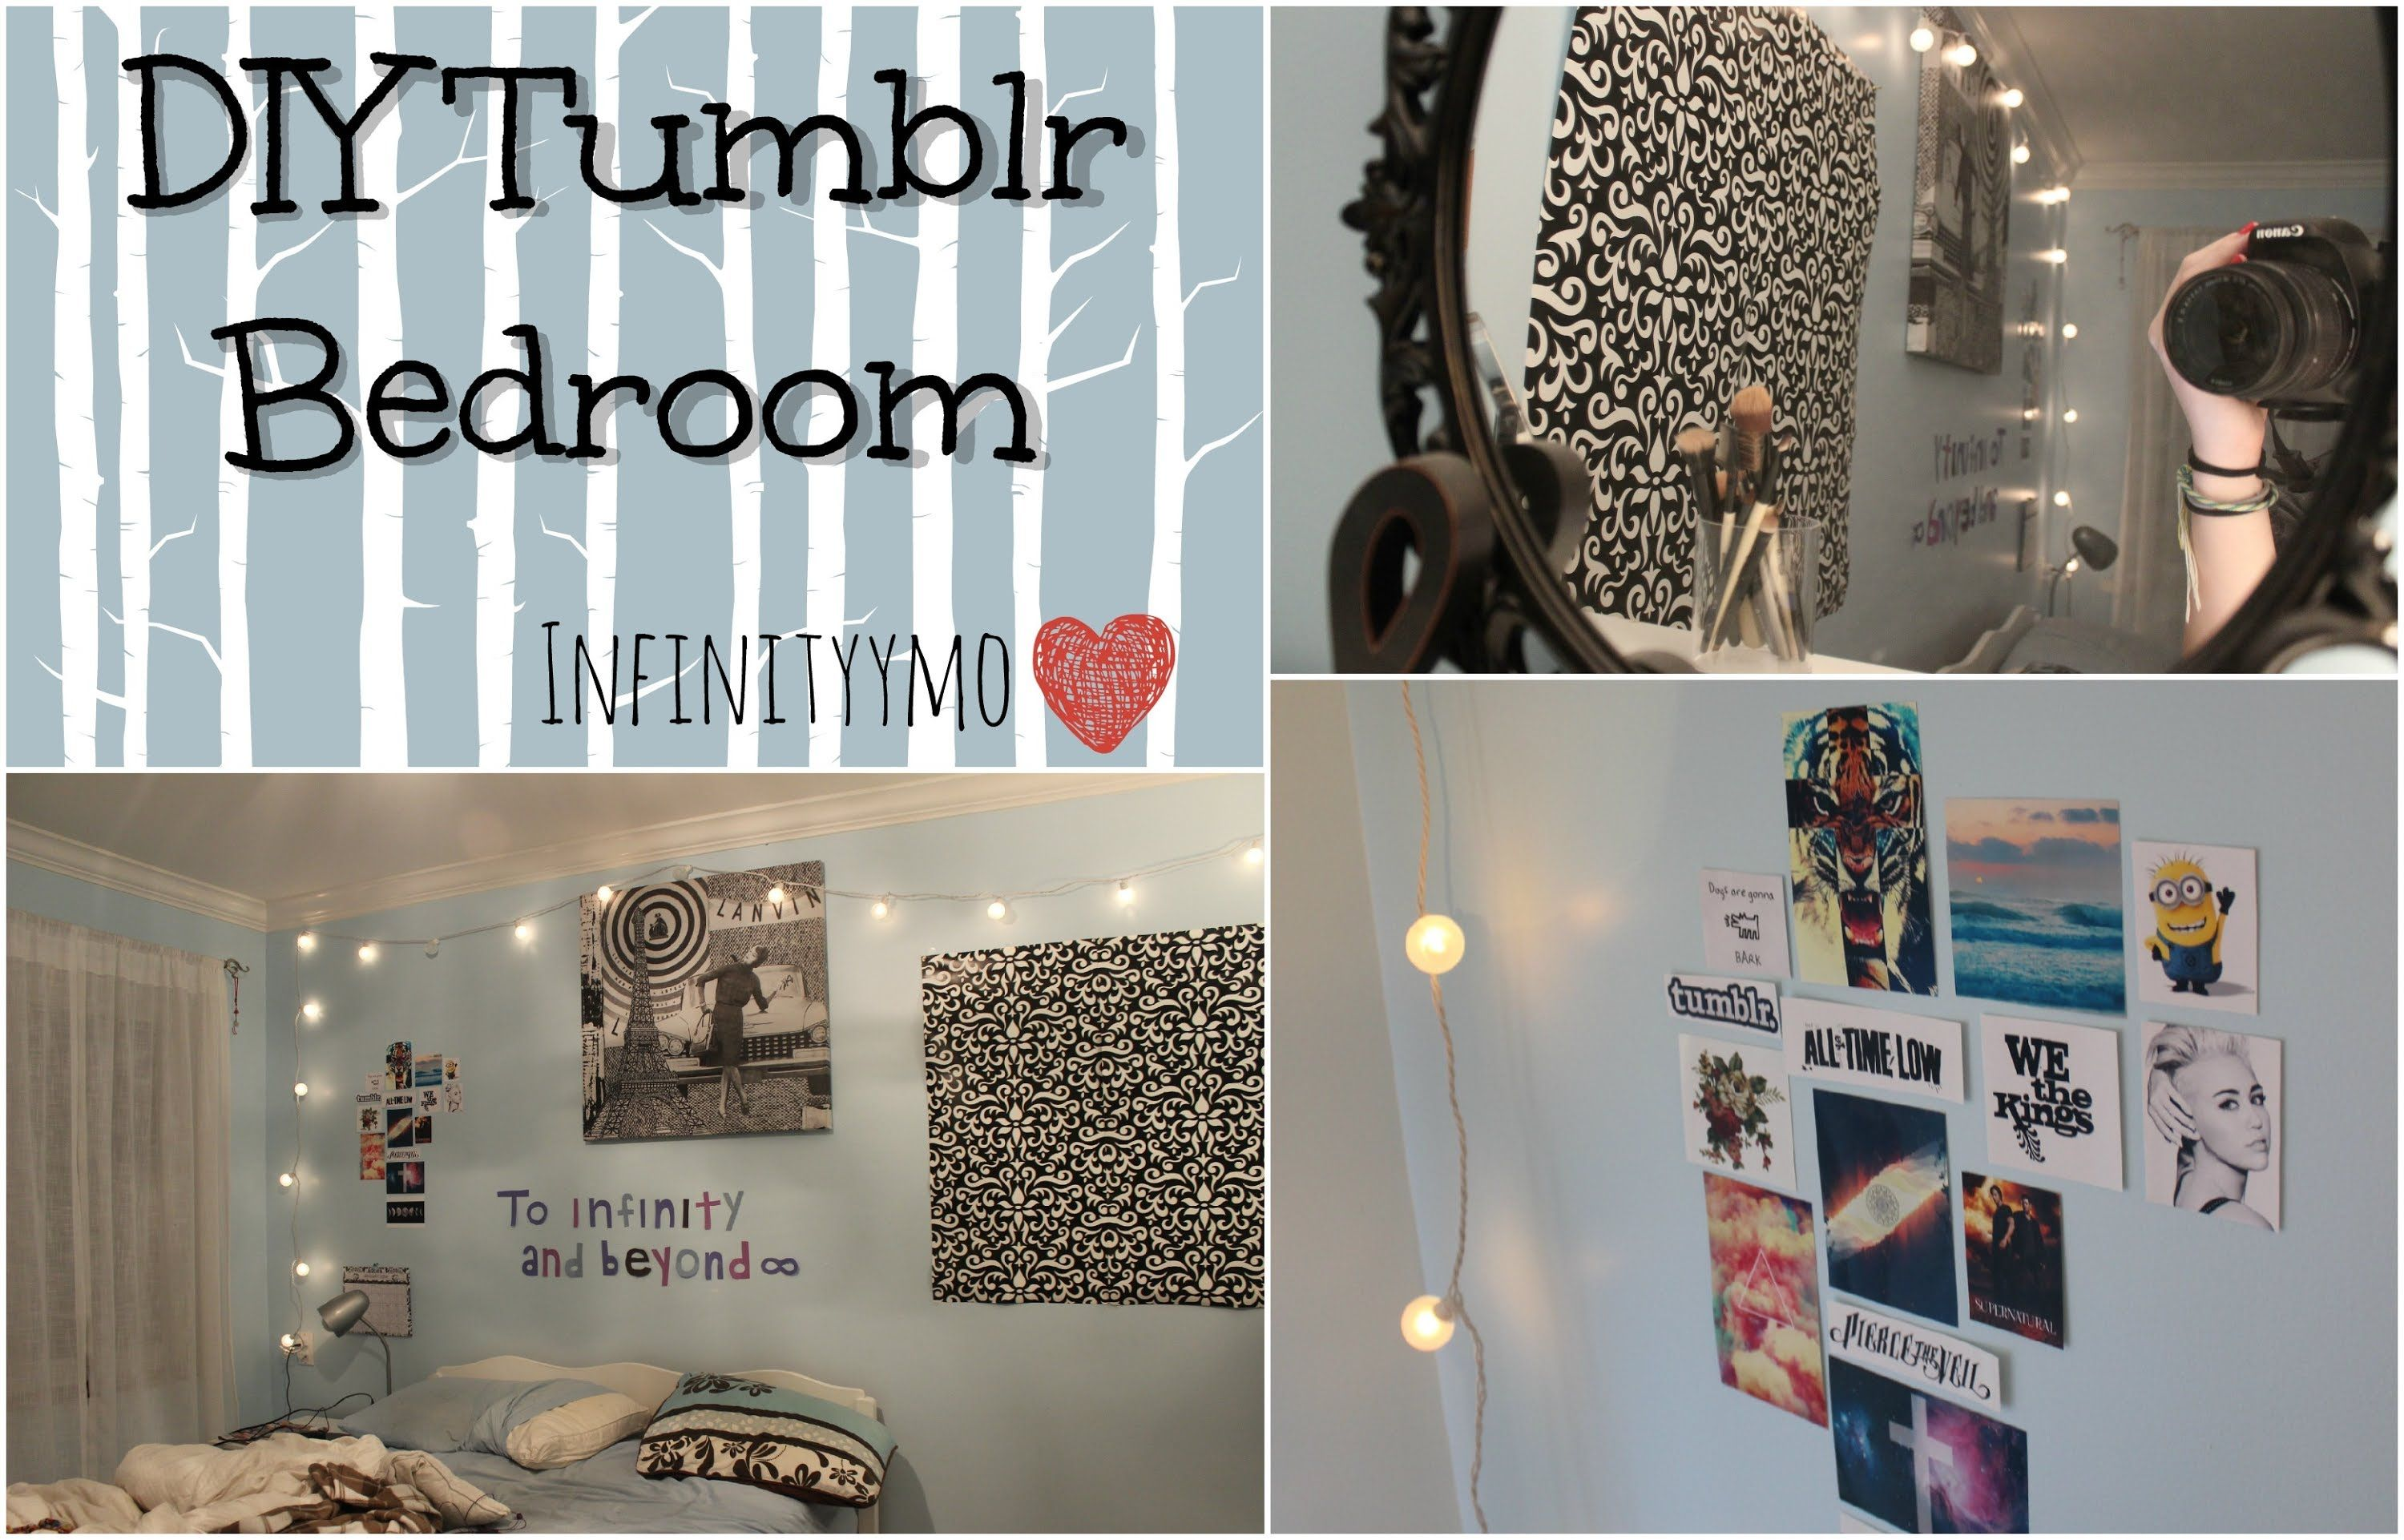 diy tumblr bedroom || infinityymo | belle | pinterest | beautiful